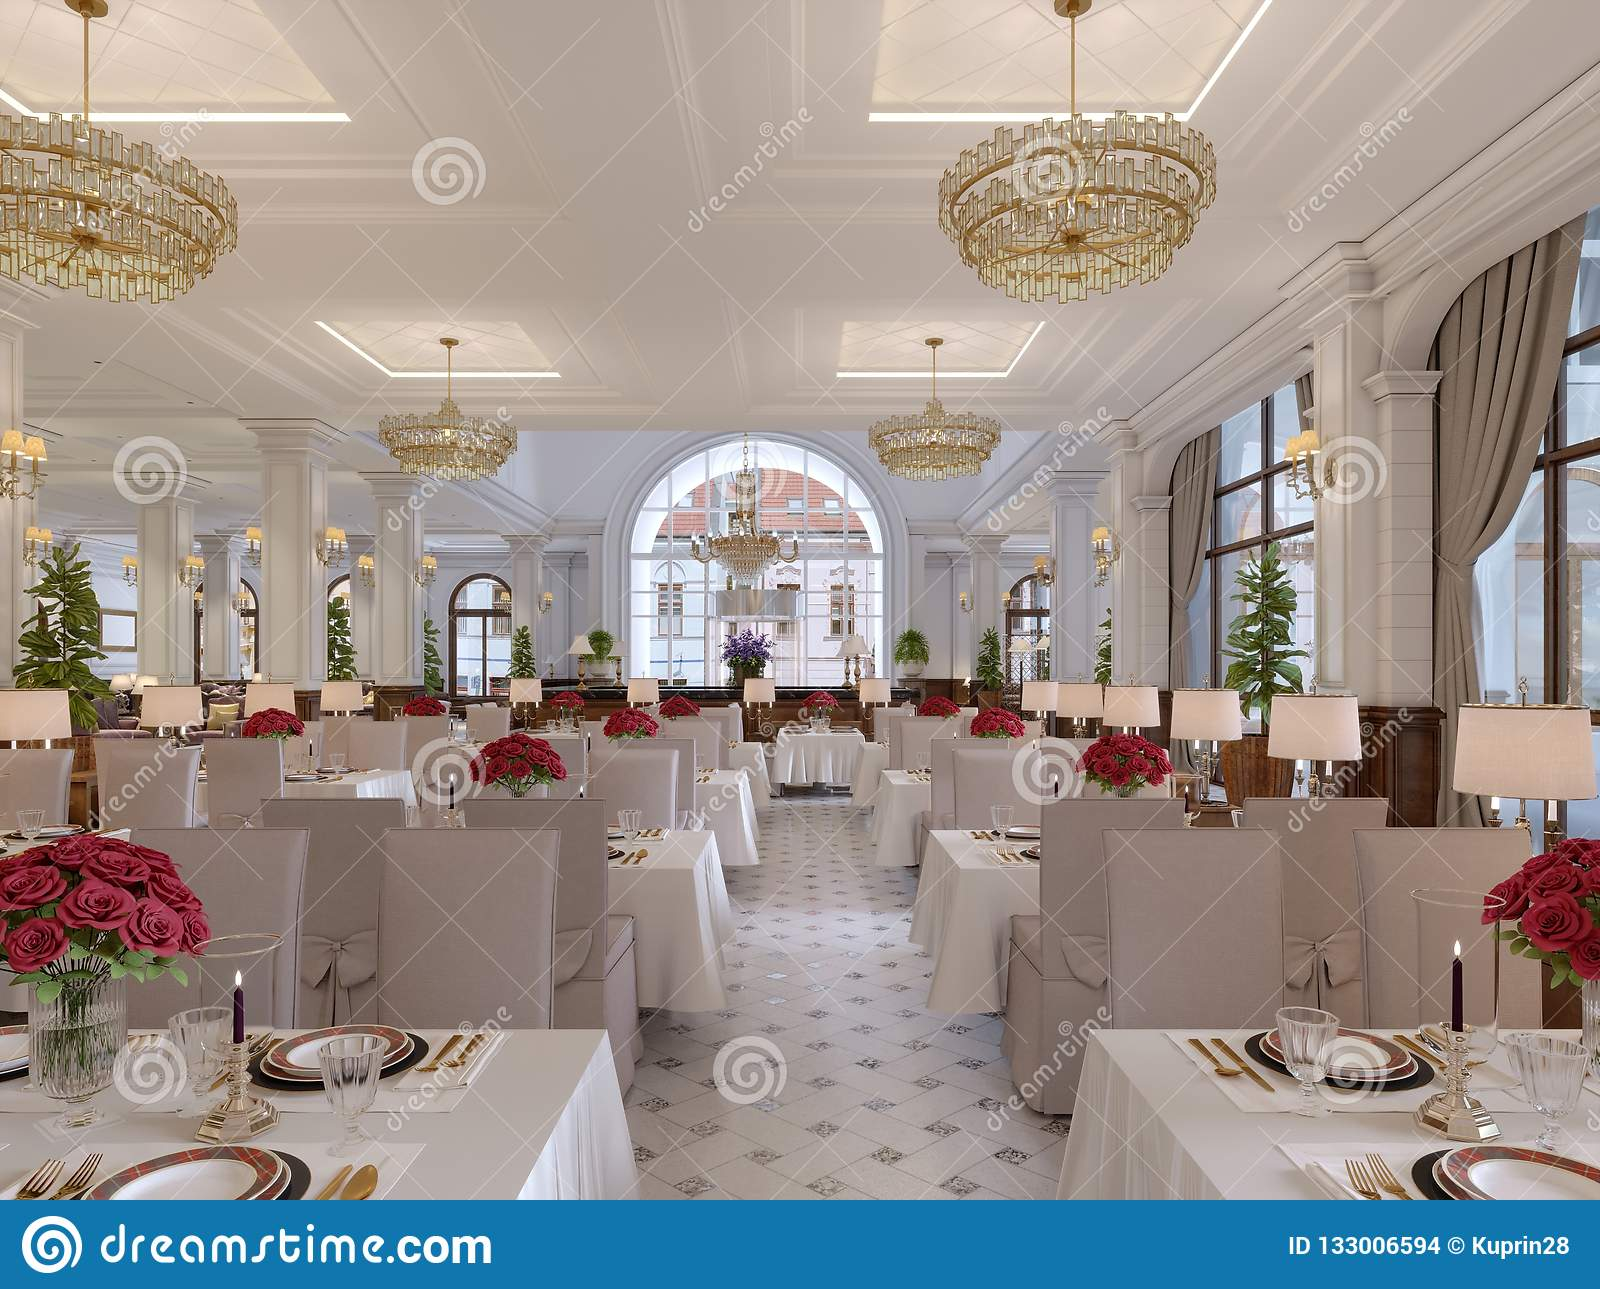 Beautiful Interior Of The Restaurant In A Modern Hotel With White ...